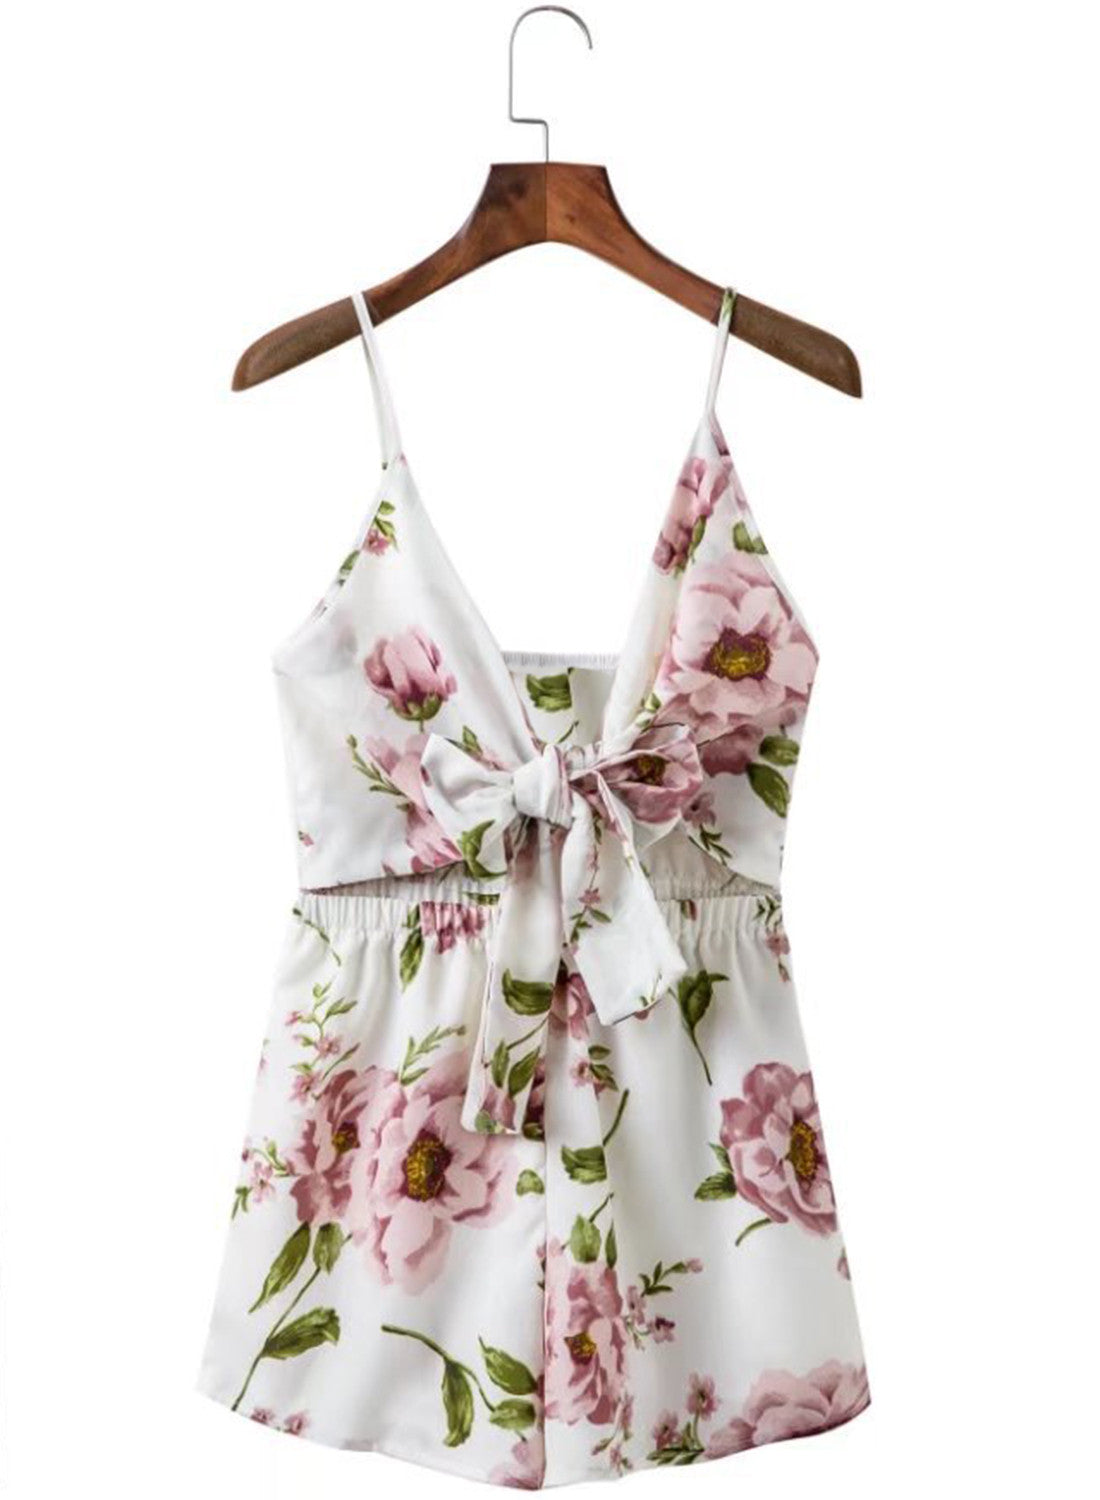 ee773c4c7b8 ... Spaghetti Strap Floral Printed Tie front Romper